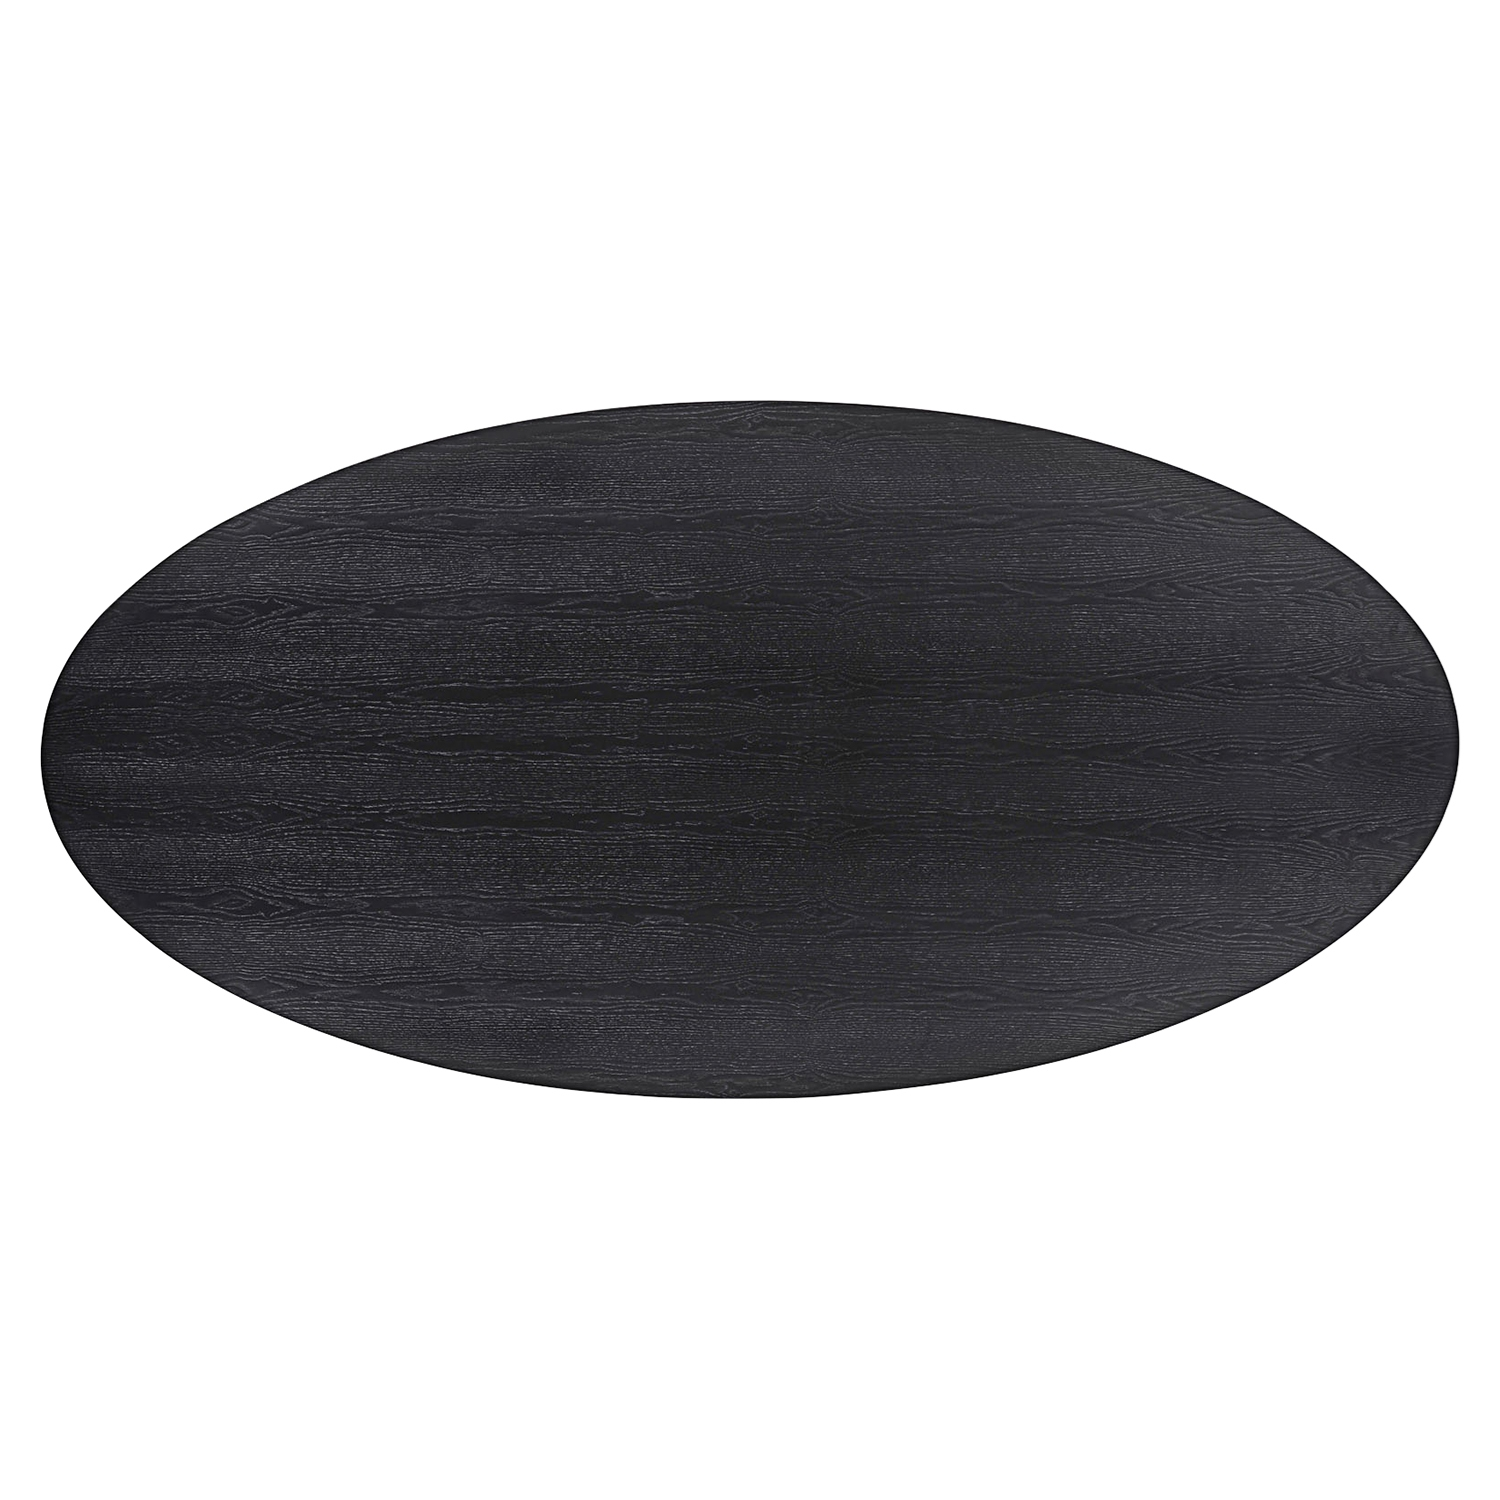 Event Oval Wood Dining Table - Black - EEI-1629-BLK